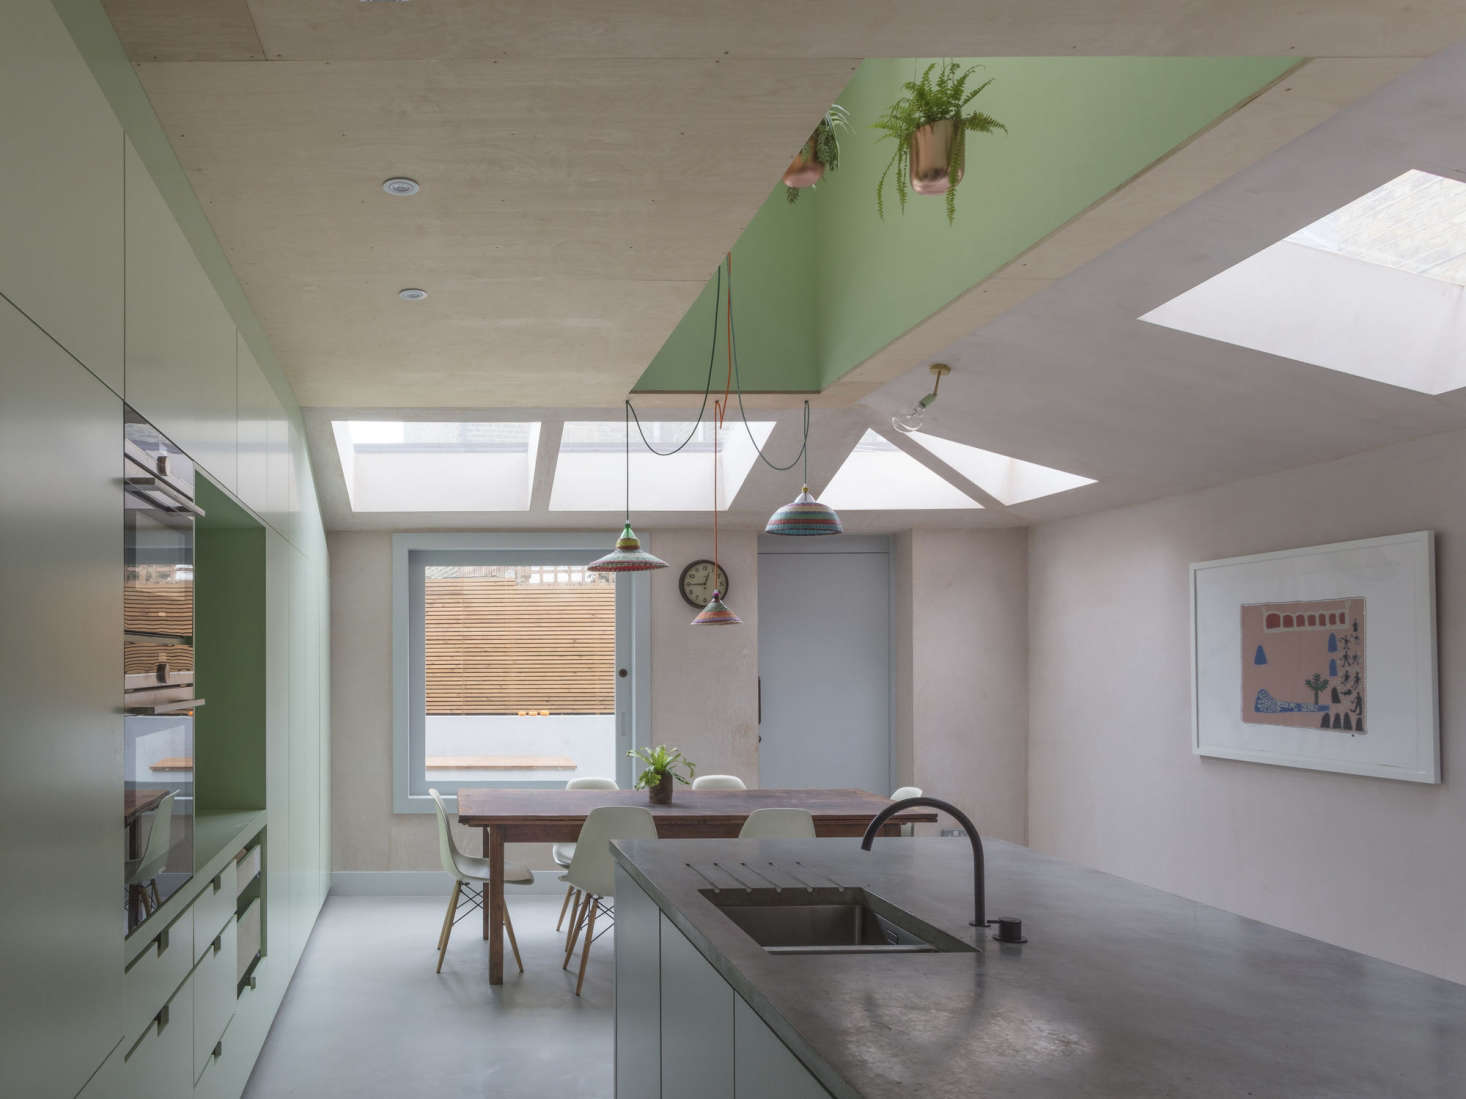 The Architects Designed The Kitchen With Green Spray Painted MDF: U201cItu0027s  Less Expensive